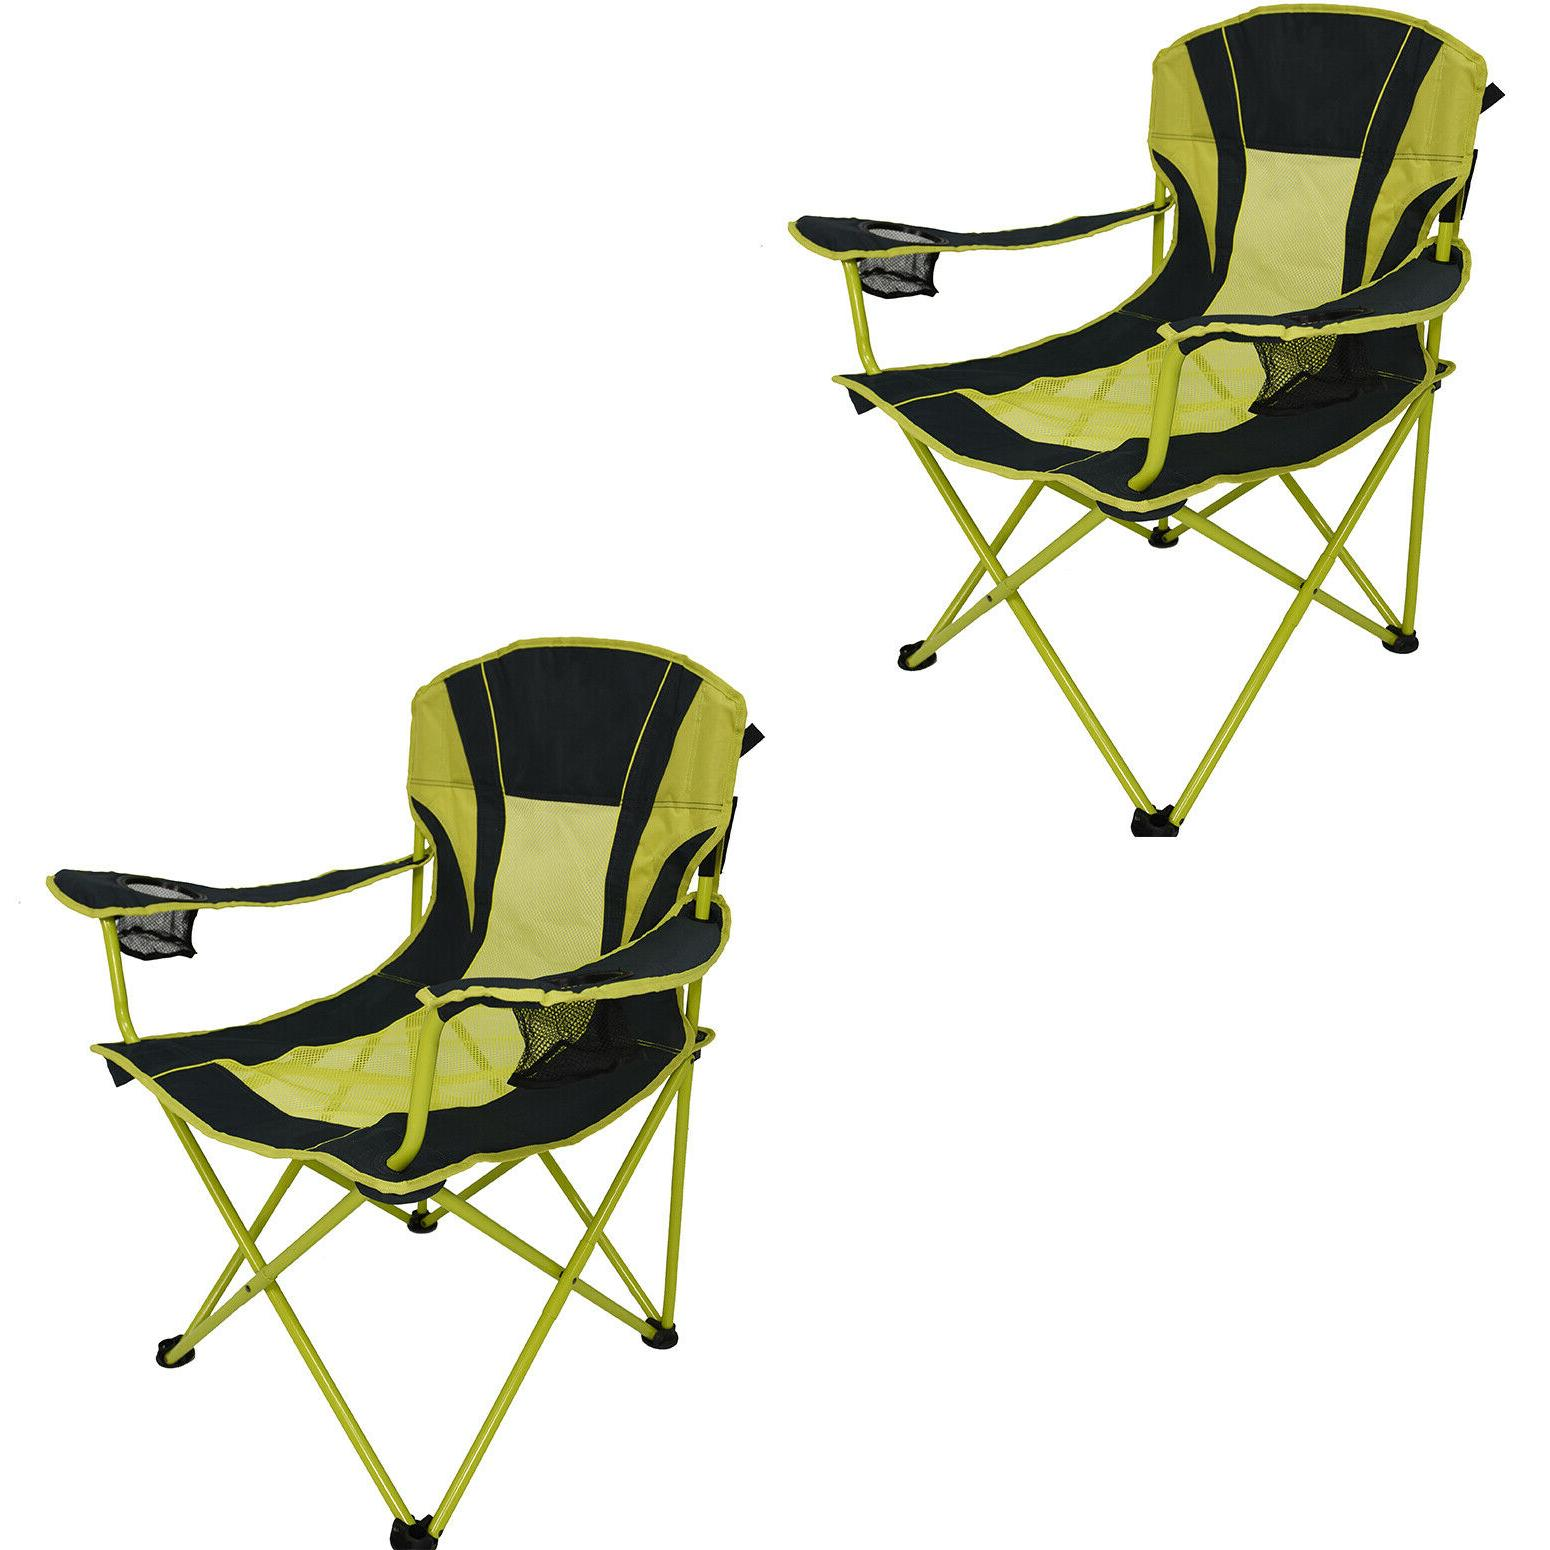 Oversize Mesh Folding Camping Chair 2-Pack Camp Patio Lawn R